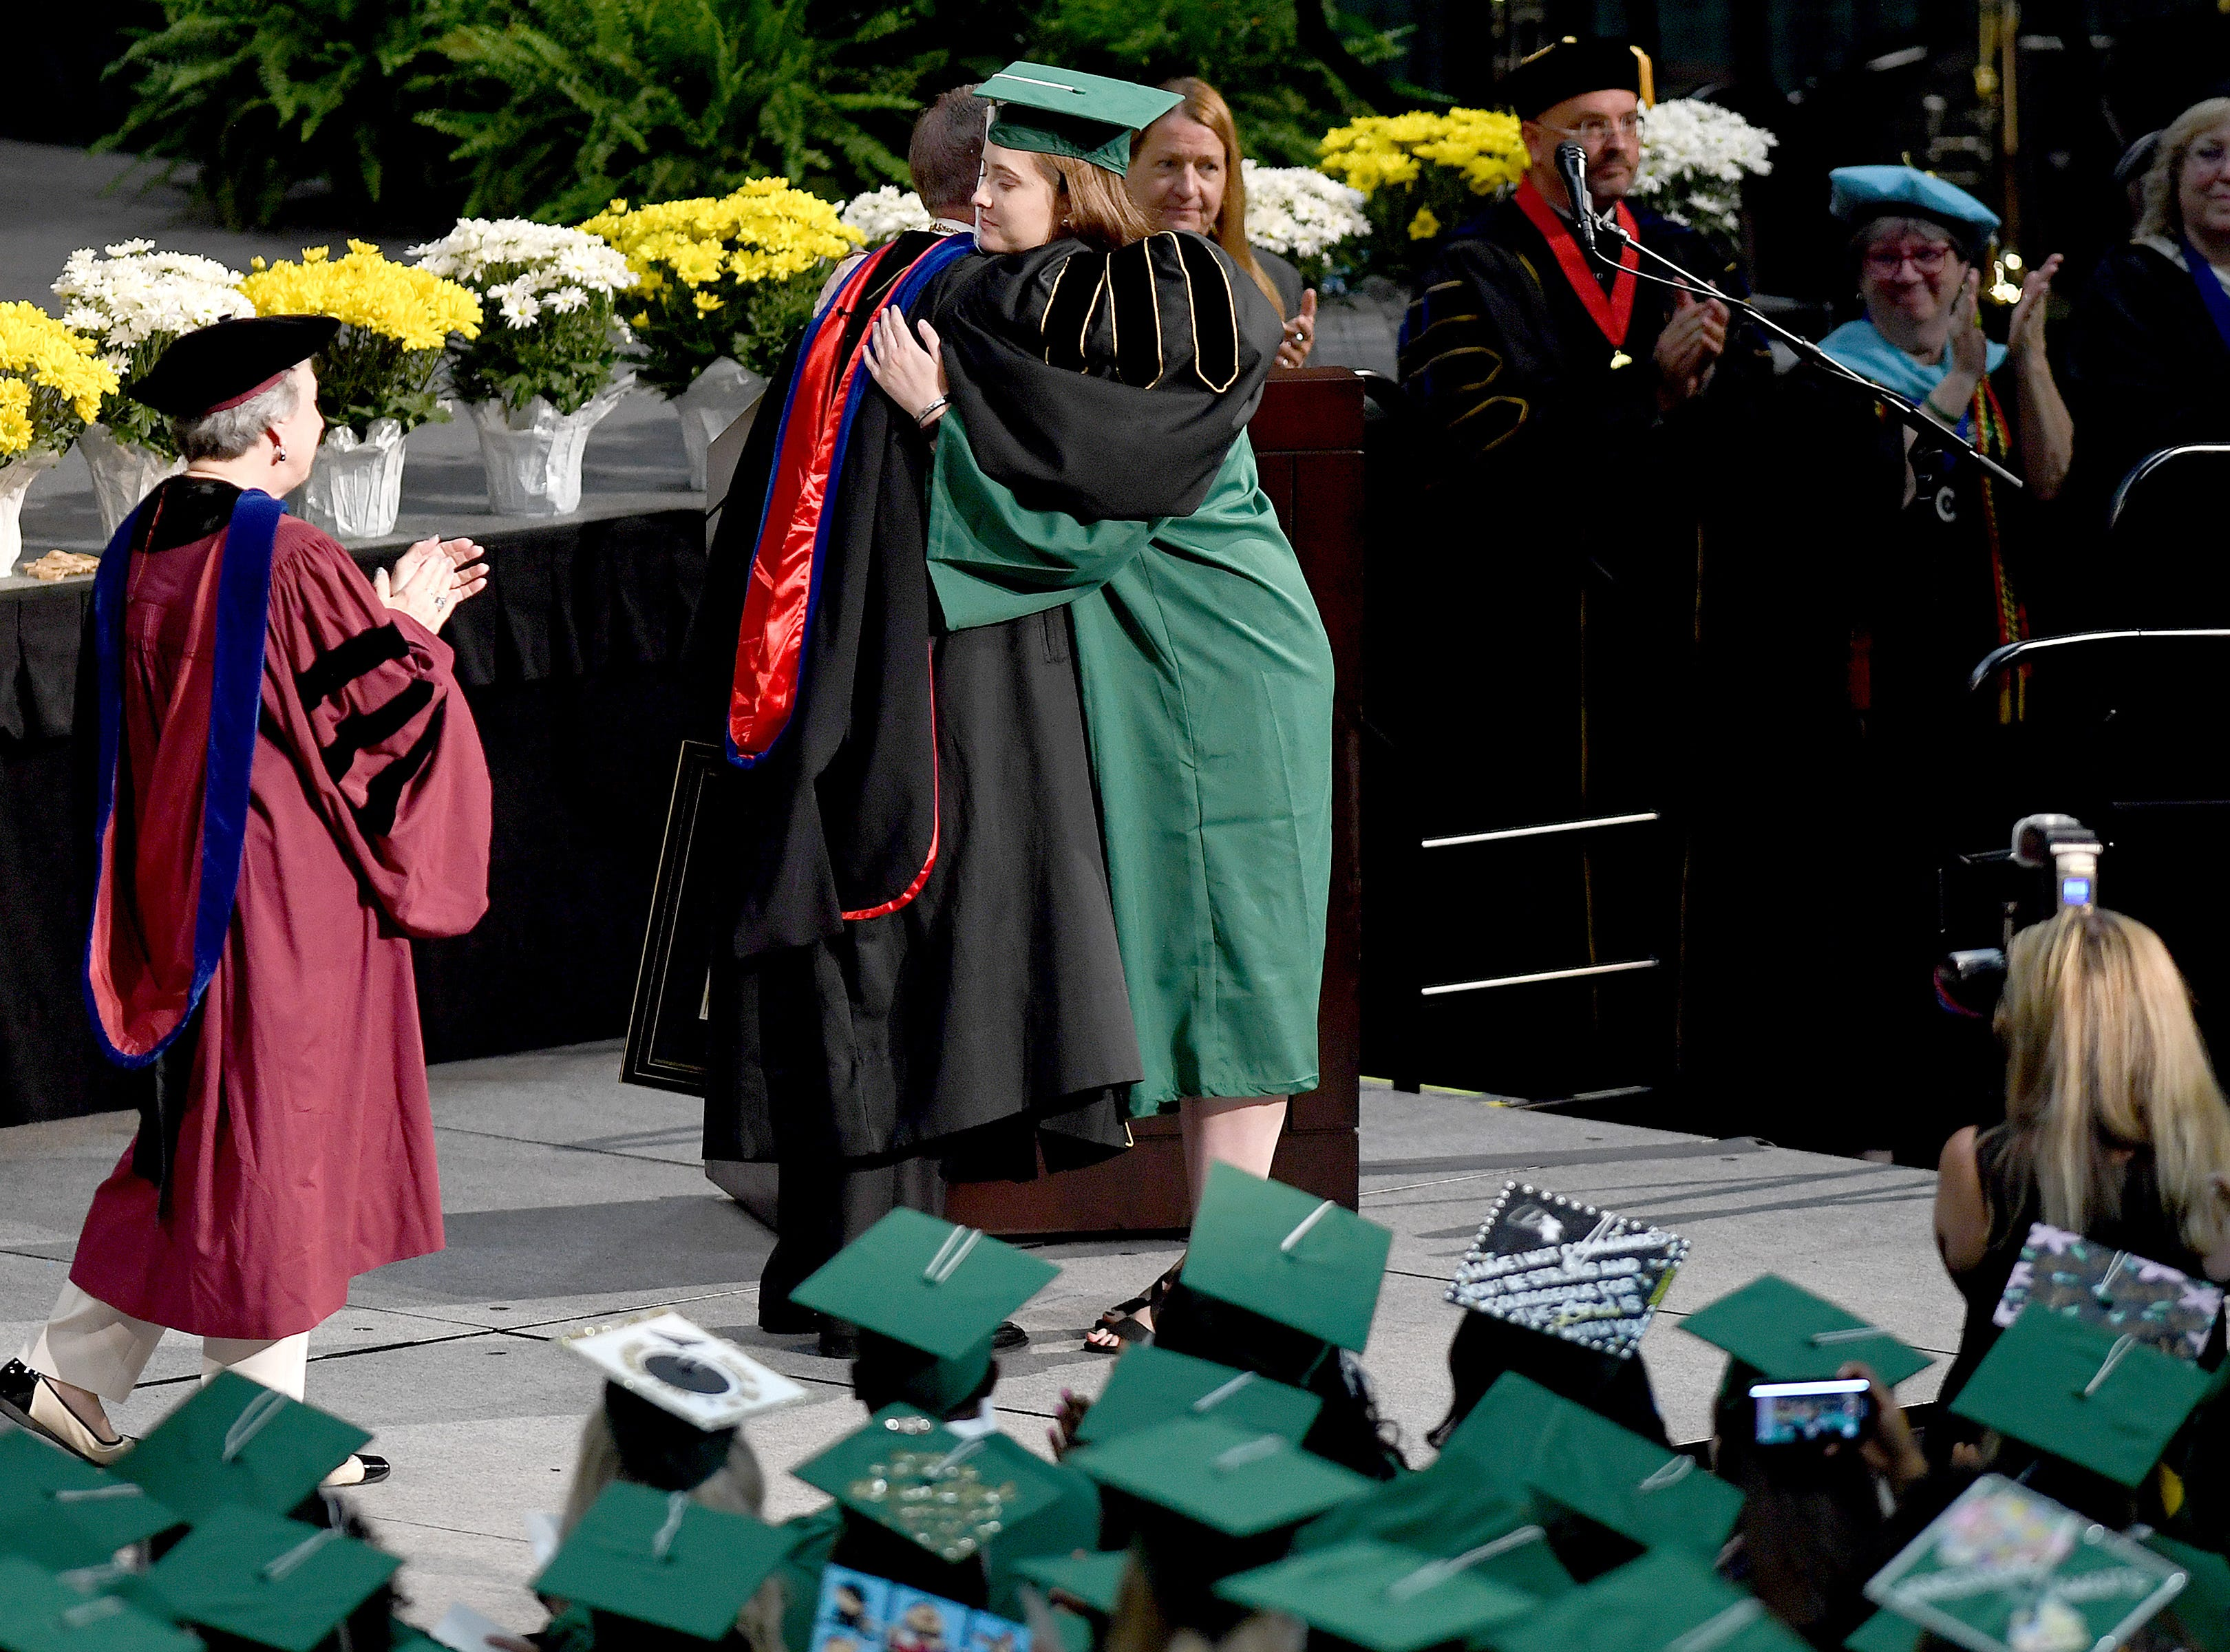 UNC Charlotte graduate Emily Houpt hugs chancellor Philip Dubois as she is honored and given her B.A in International Studies during the University's Commencement ceremony for the College of Liberal Arts and Sciences in Charlotte on May 11, 2019. Houpt was injured in the April 30 shooting at the university.